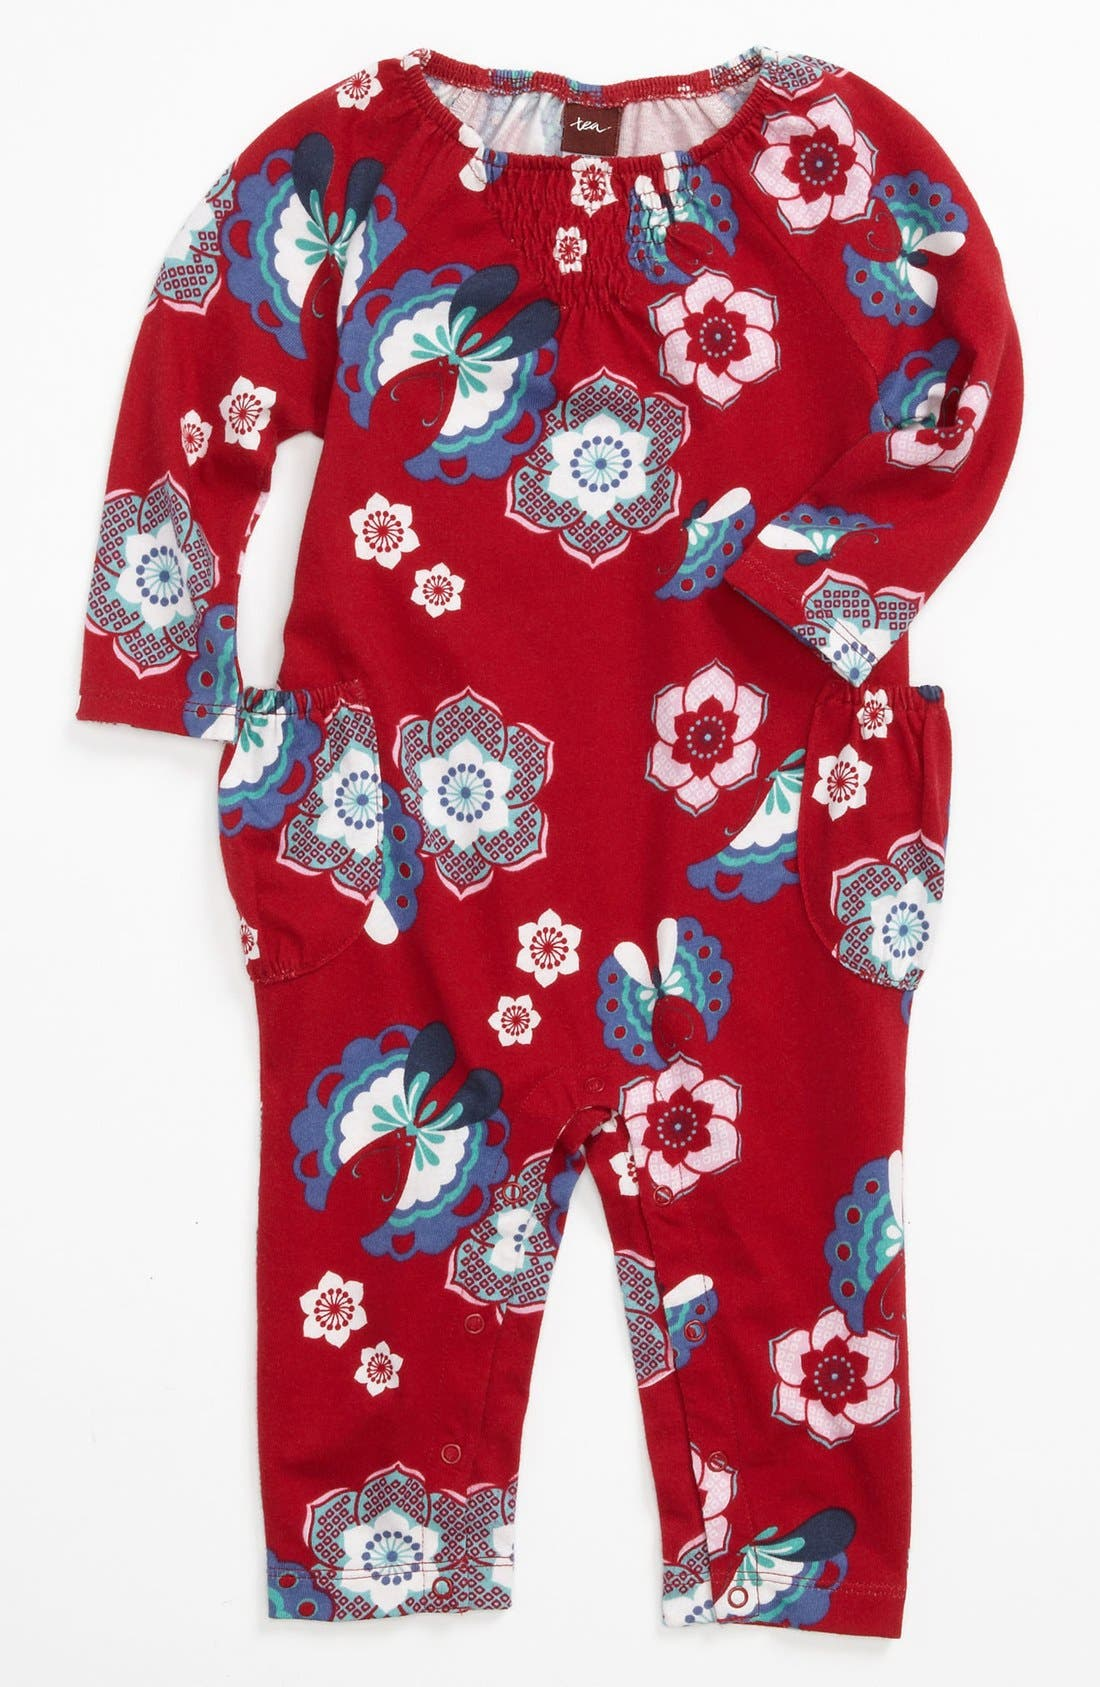 Alternate Image 1 Selected - Tea Collection 'Butterfly Floral' Coveralls (Baby Girls)